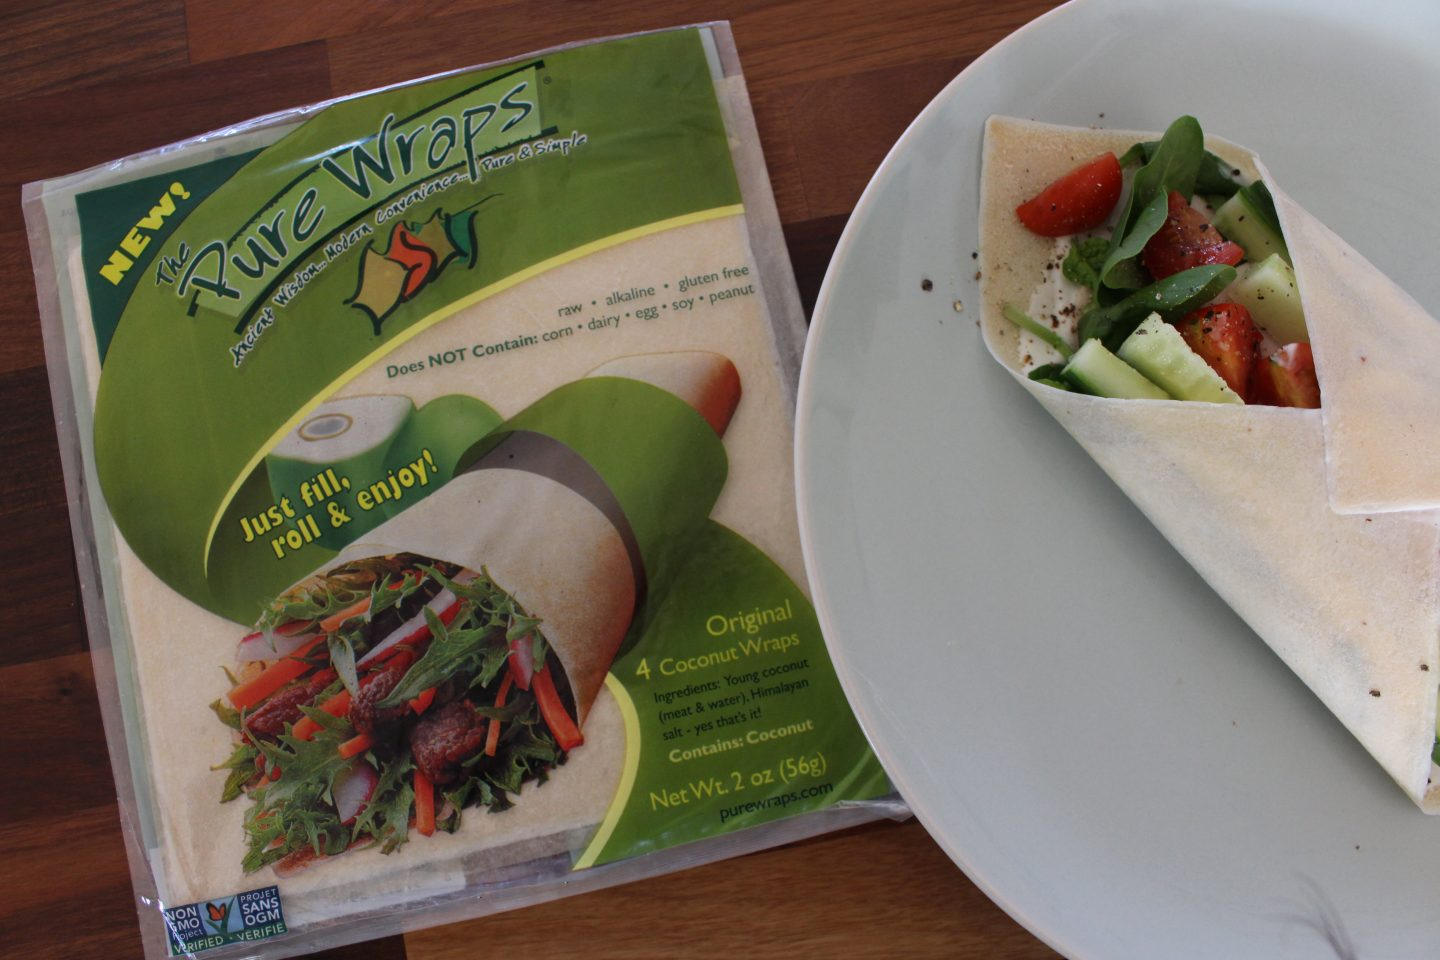 The Pure Wraps (made from coconut!) Review